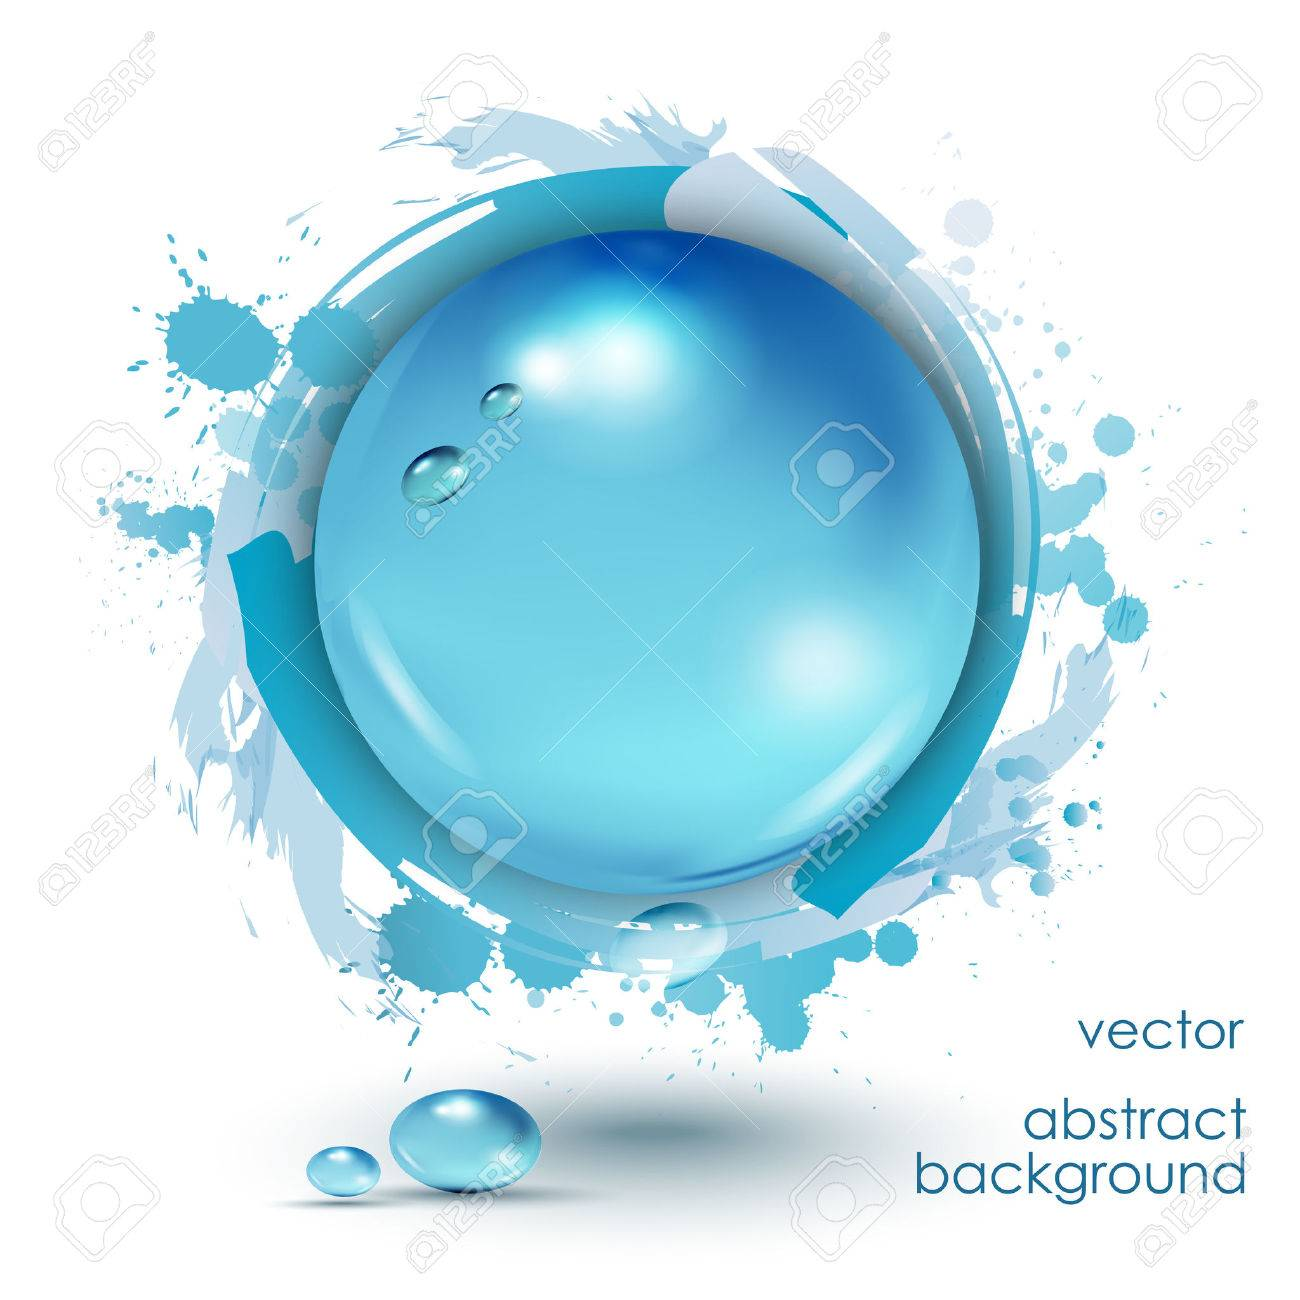 Water drops blue, vector background. - 27547219